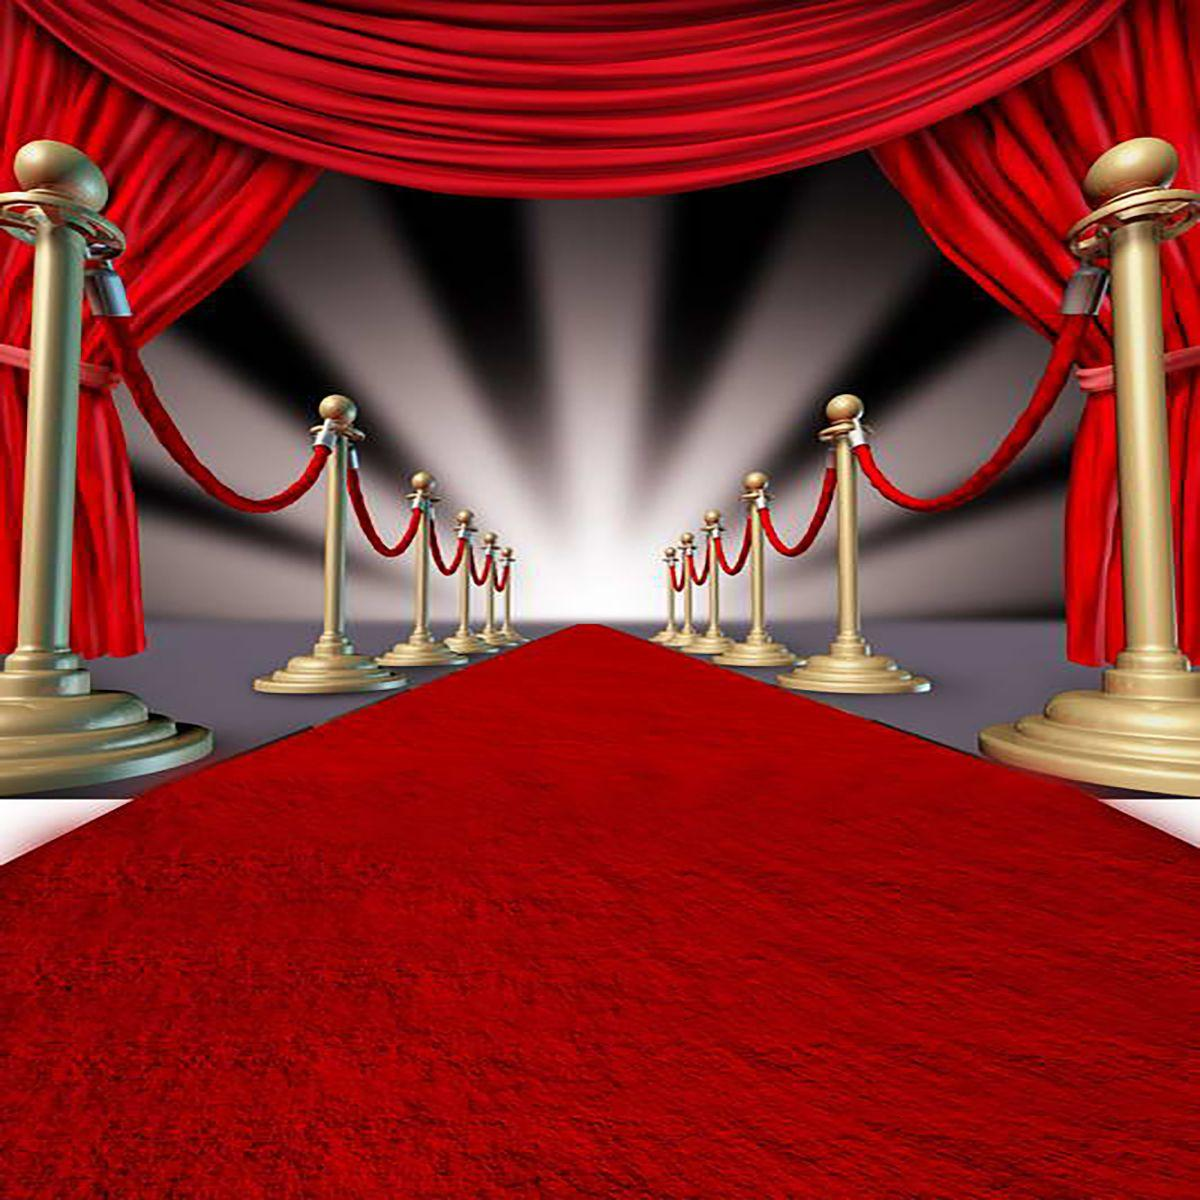 Red Carpet Backgrounds Wallpaper Cave